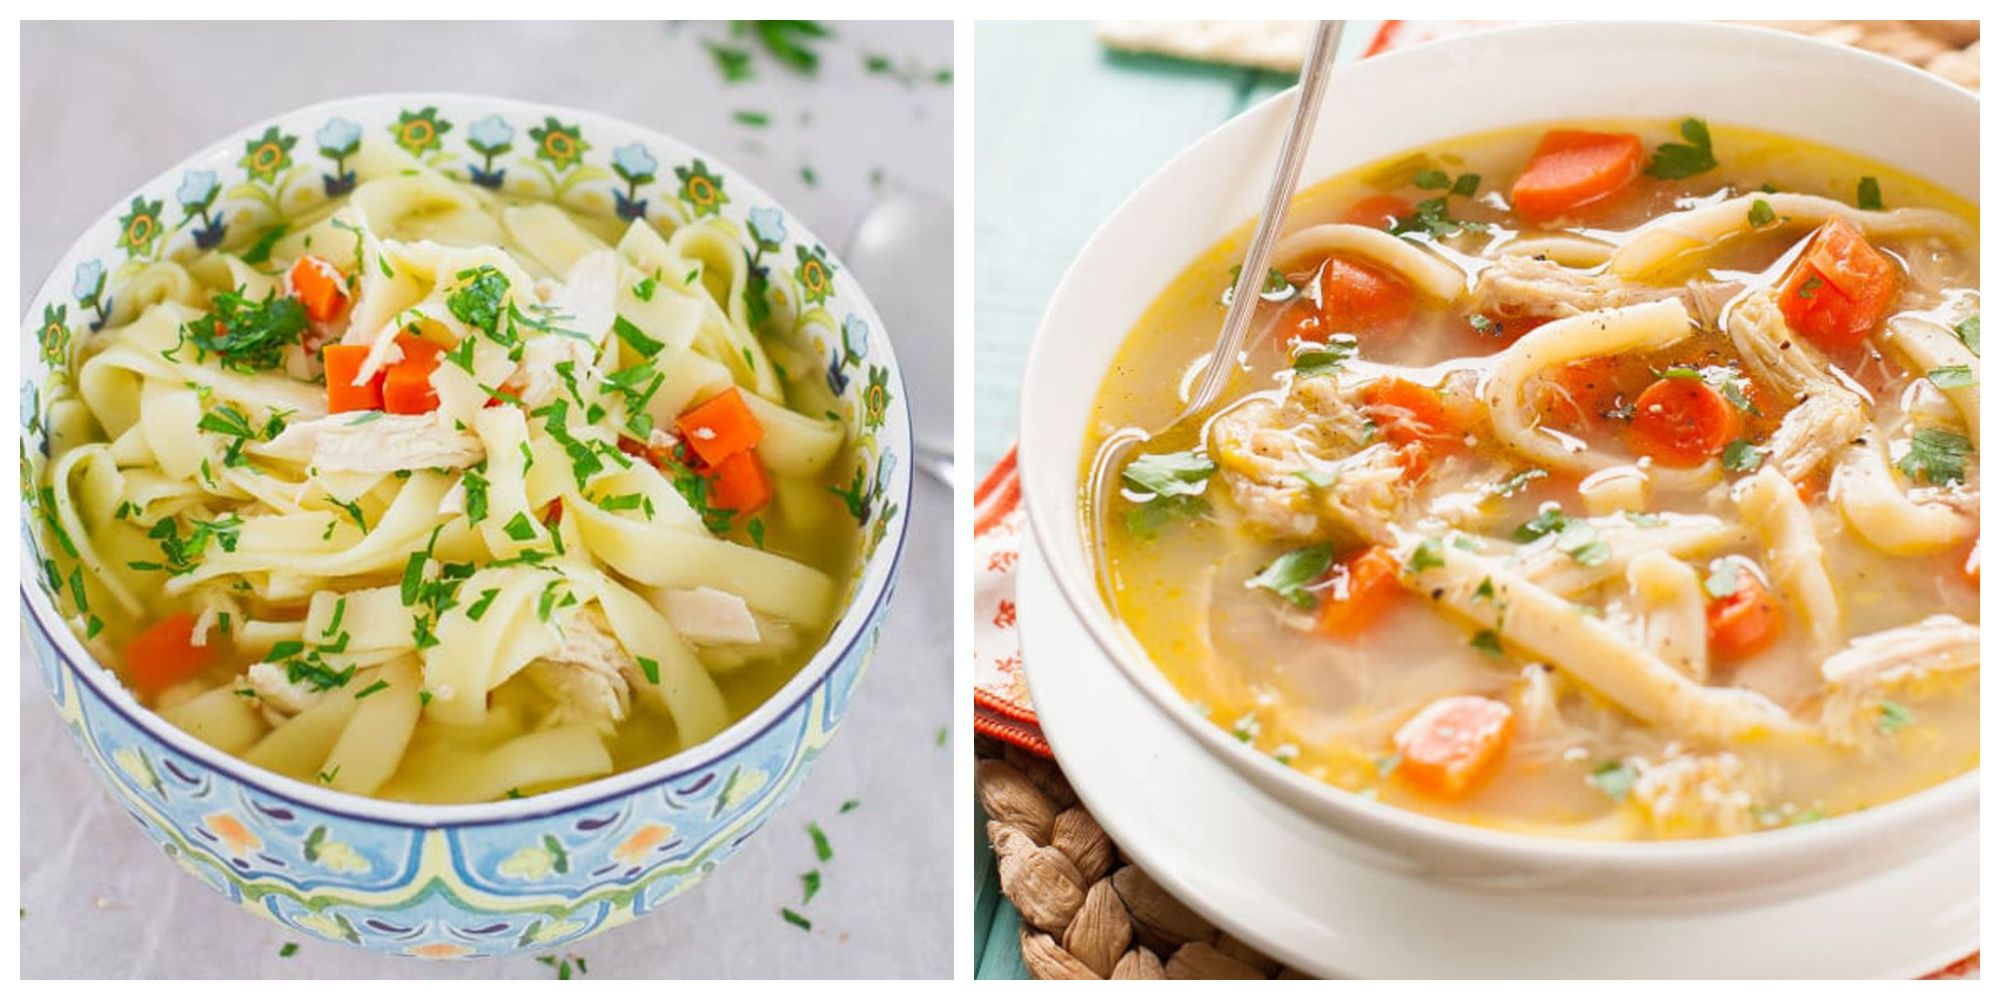 15 Chicken Noodle Soup Recipes You Can Make in Your Slow Cooker